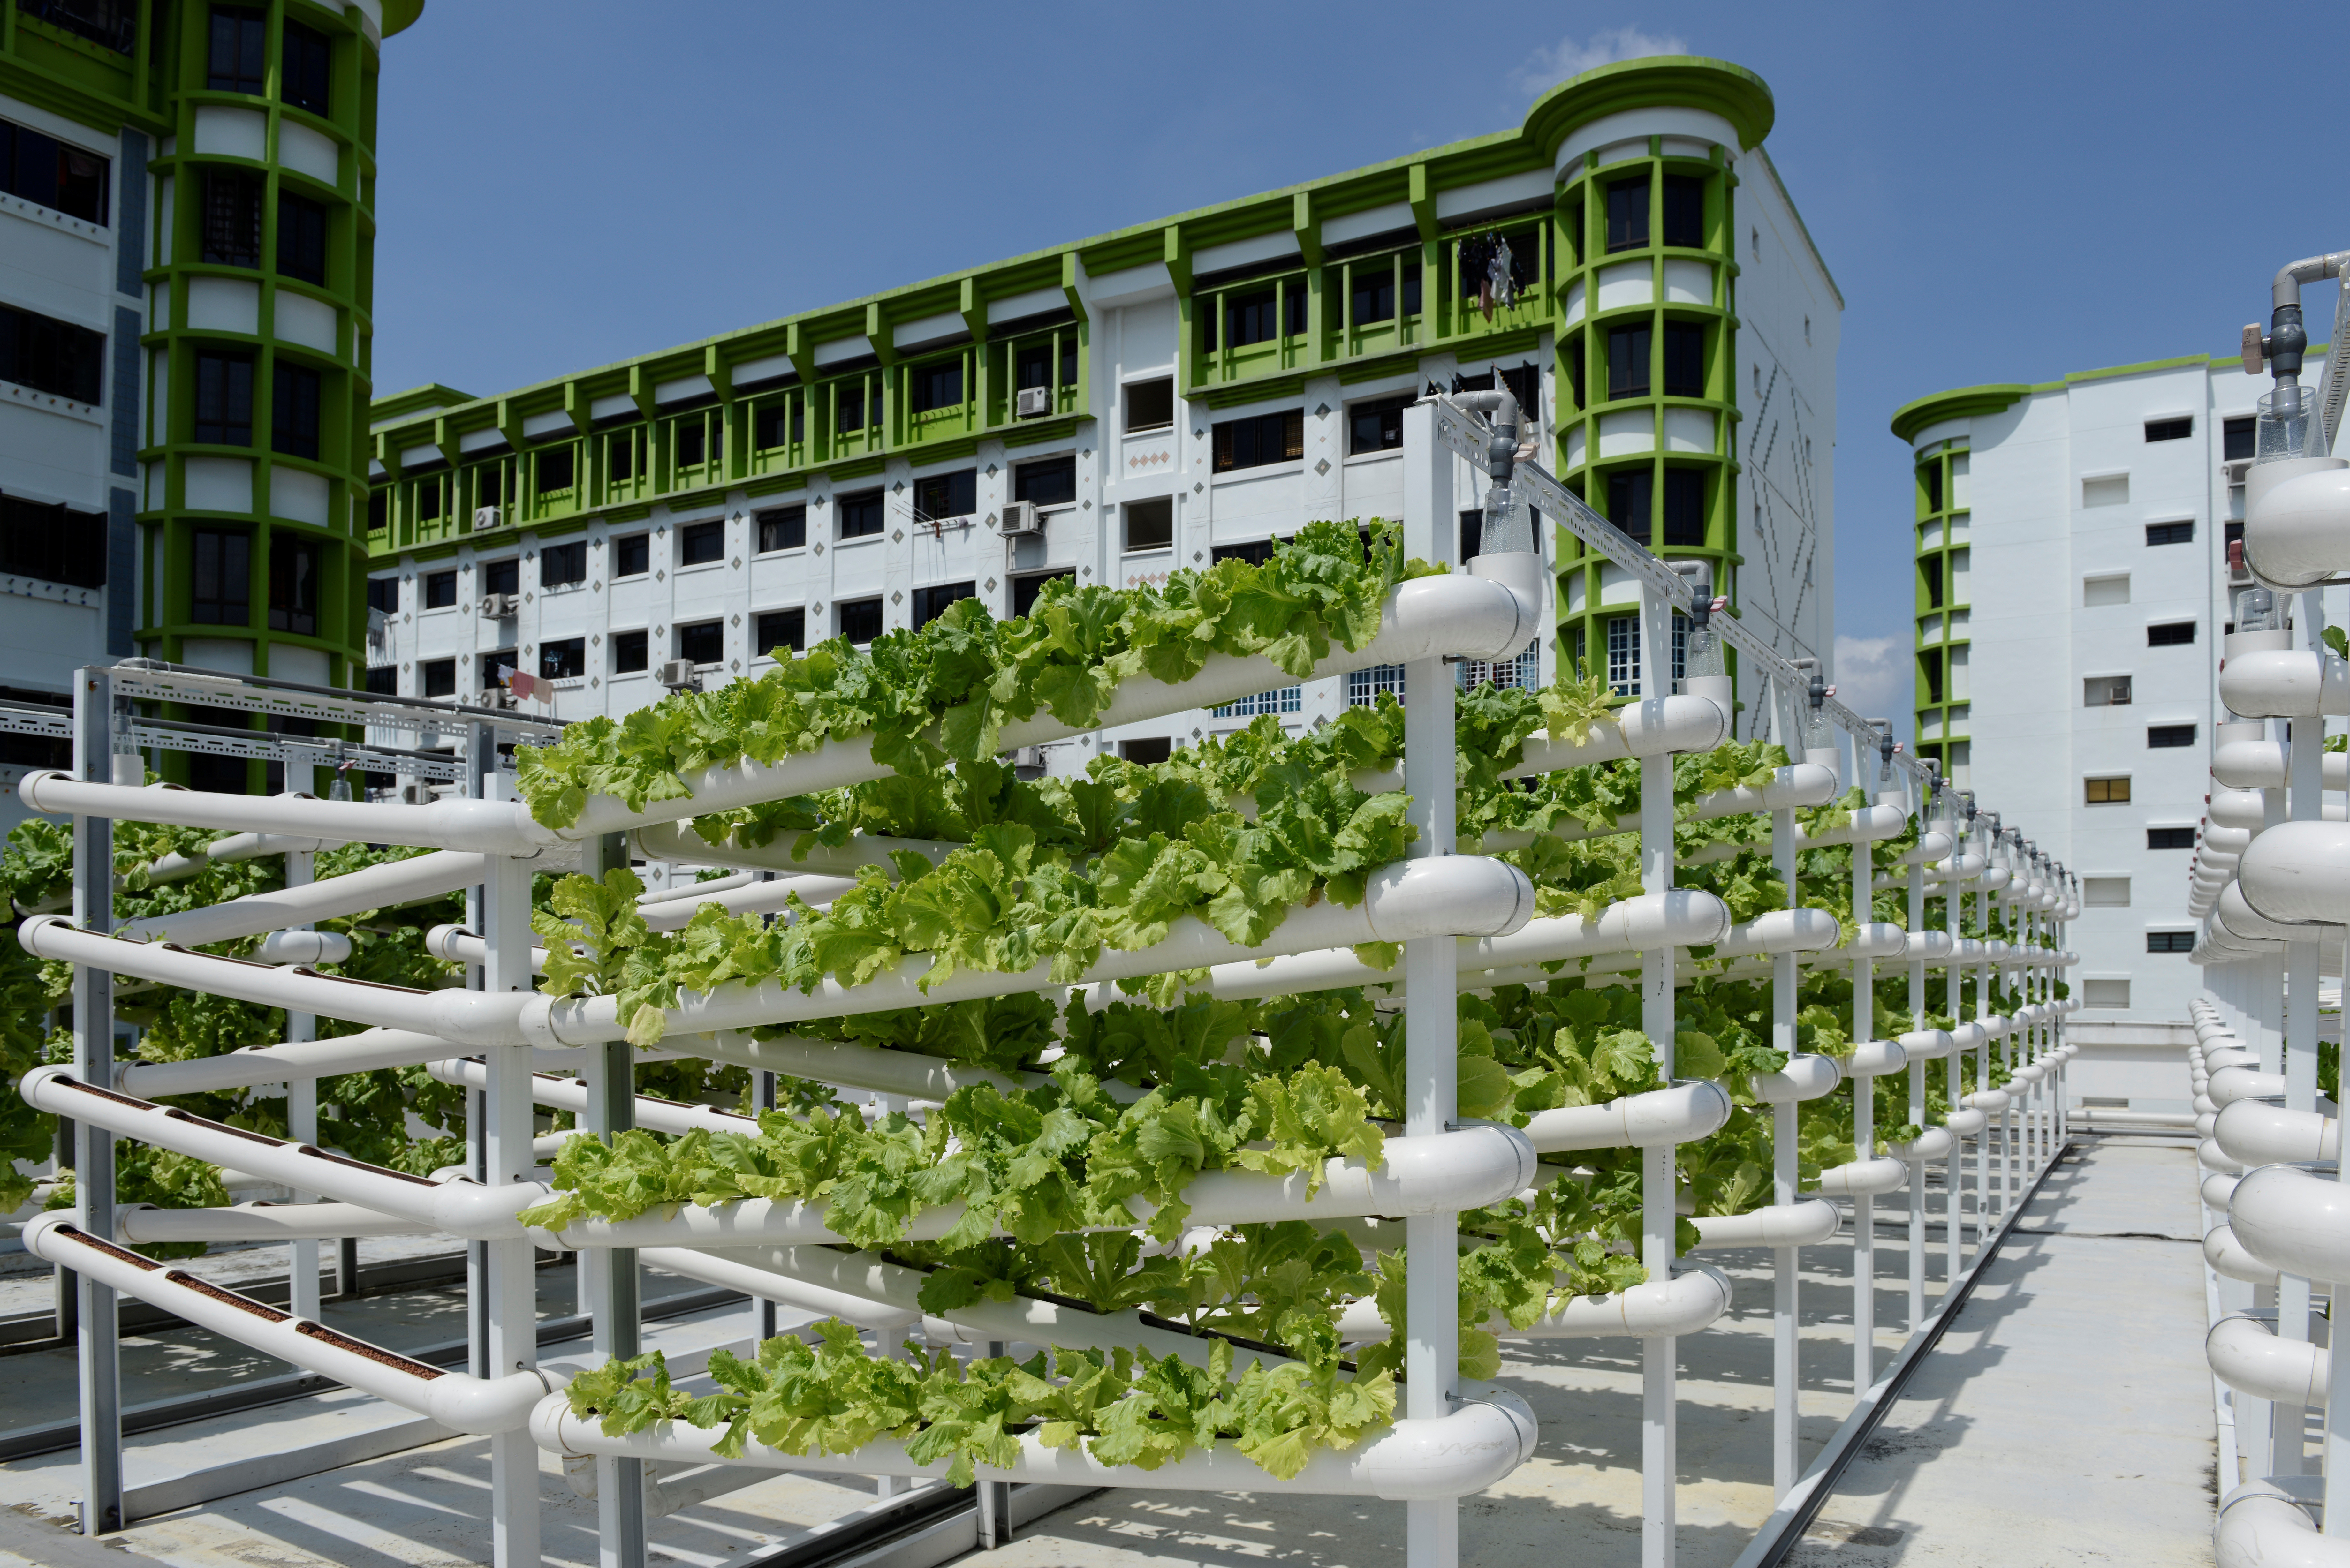 Organic vegetables are seen on growing towers that are primarily made out of polyvinyl chloride (PVC) pipes at Citiponics' urban farm on the rooftop of a multi-storey carpark in a public housing estate in western Singapore April 17, 2018. Picture taken April 17, 2018. REUTERS/Loriene Perera - RC1991373890